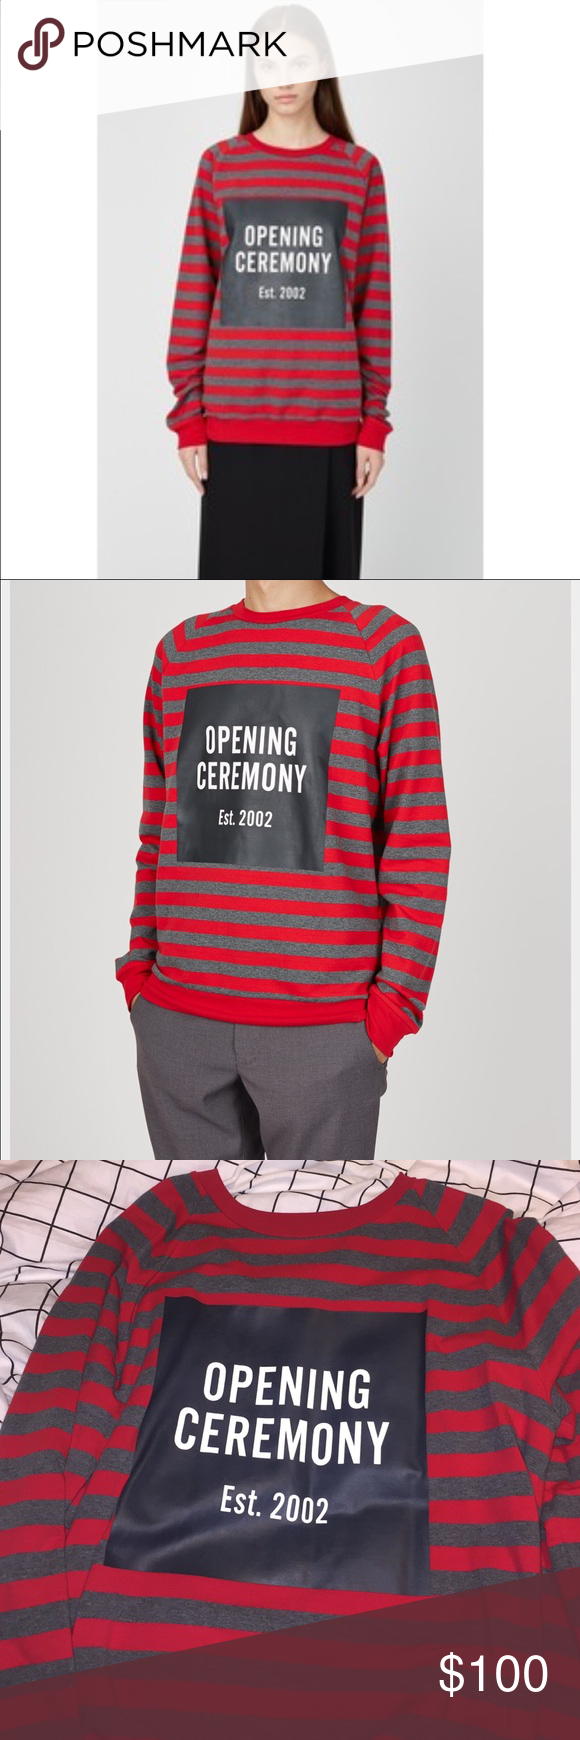 Opening Ceremony raglan sweater Worn once. Brand new condition. 10/10. Opening ceremony red and gray striped sweater in men's size large. Posted picture of both genders wearing the sweater. Front has the logo and back has mirror image of front logo. So be warned you'll be getting a lot of comments on how it's backwards on the back. Opening Ceremony Sweaters Crewneck